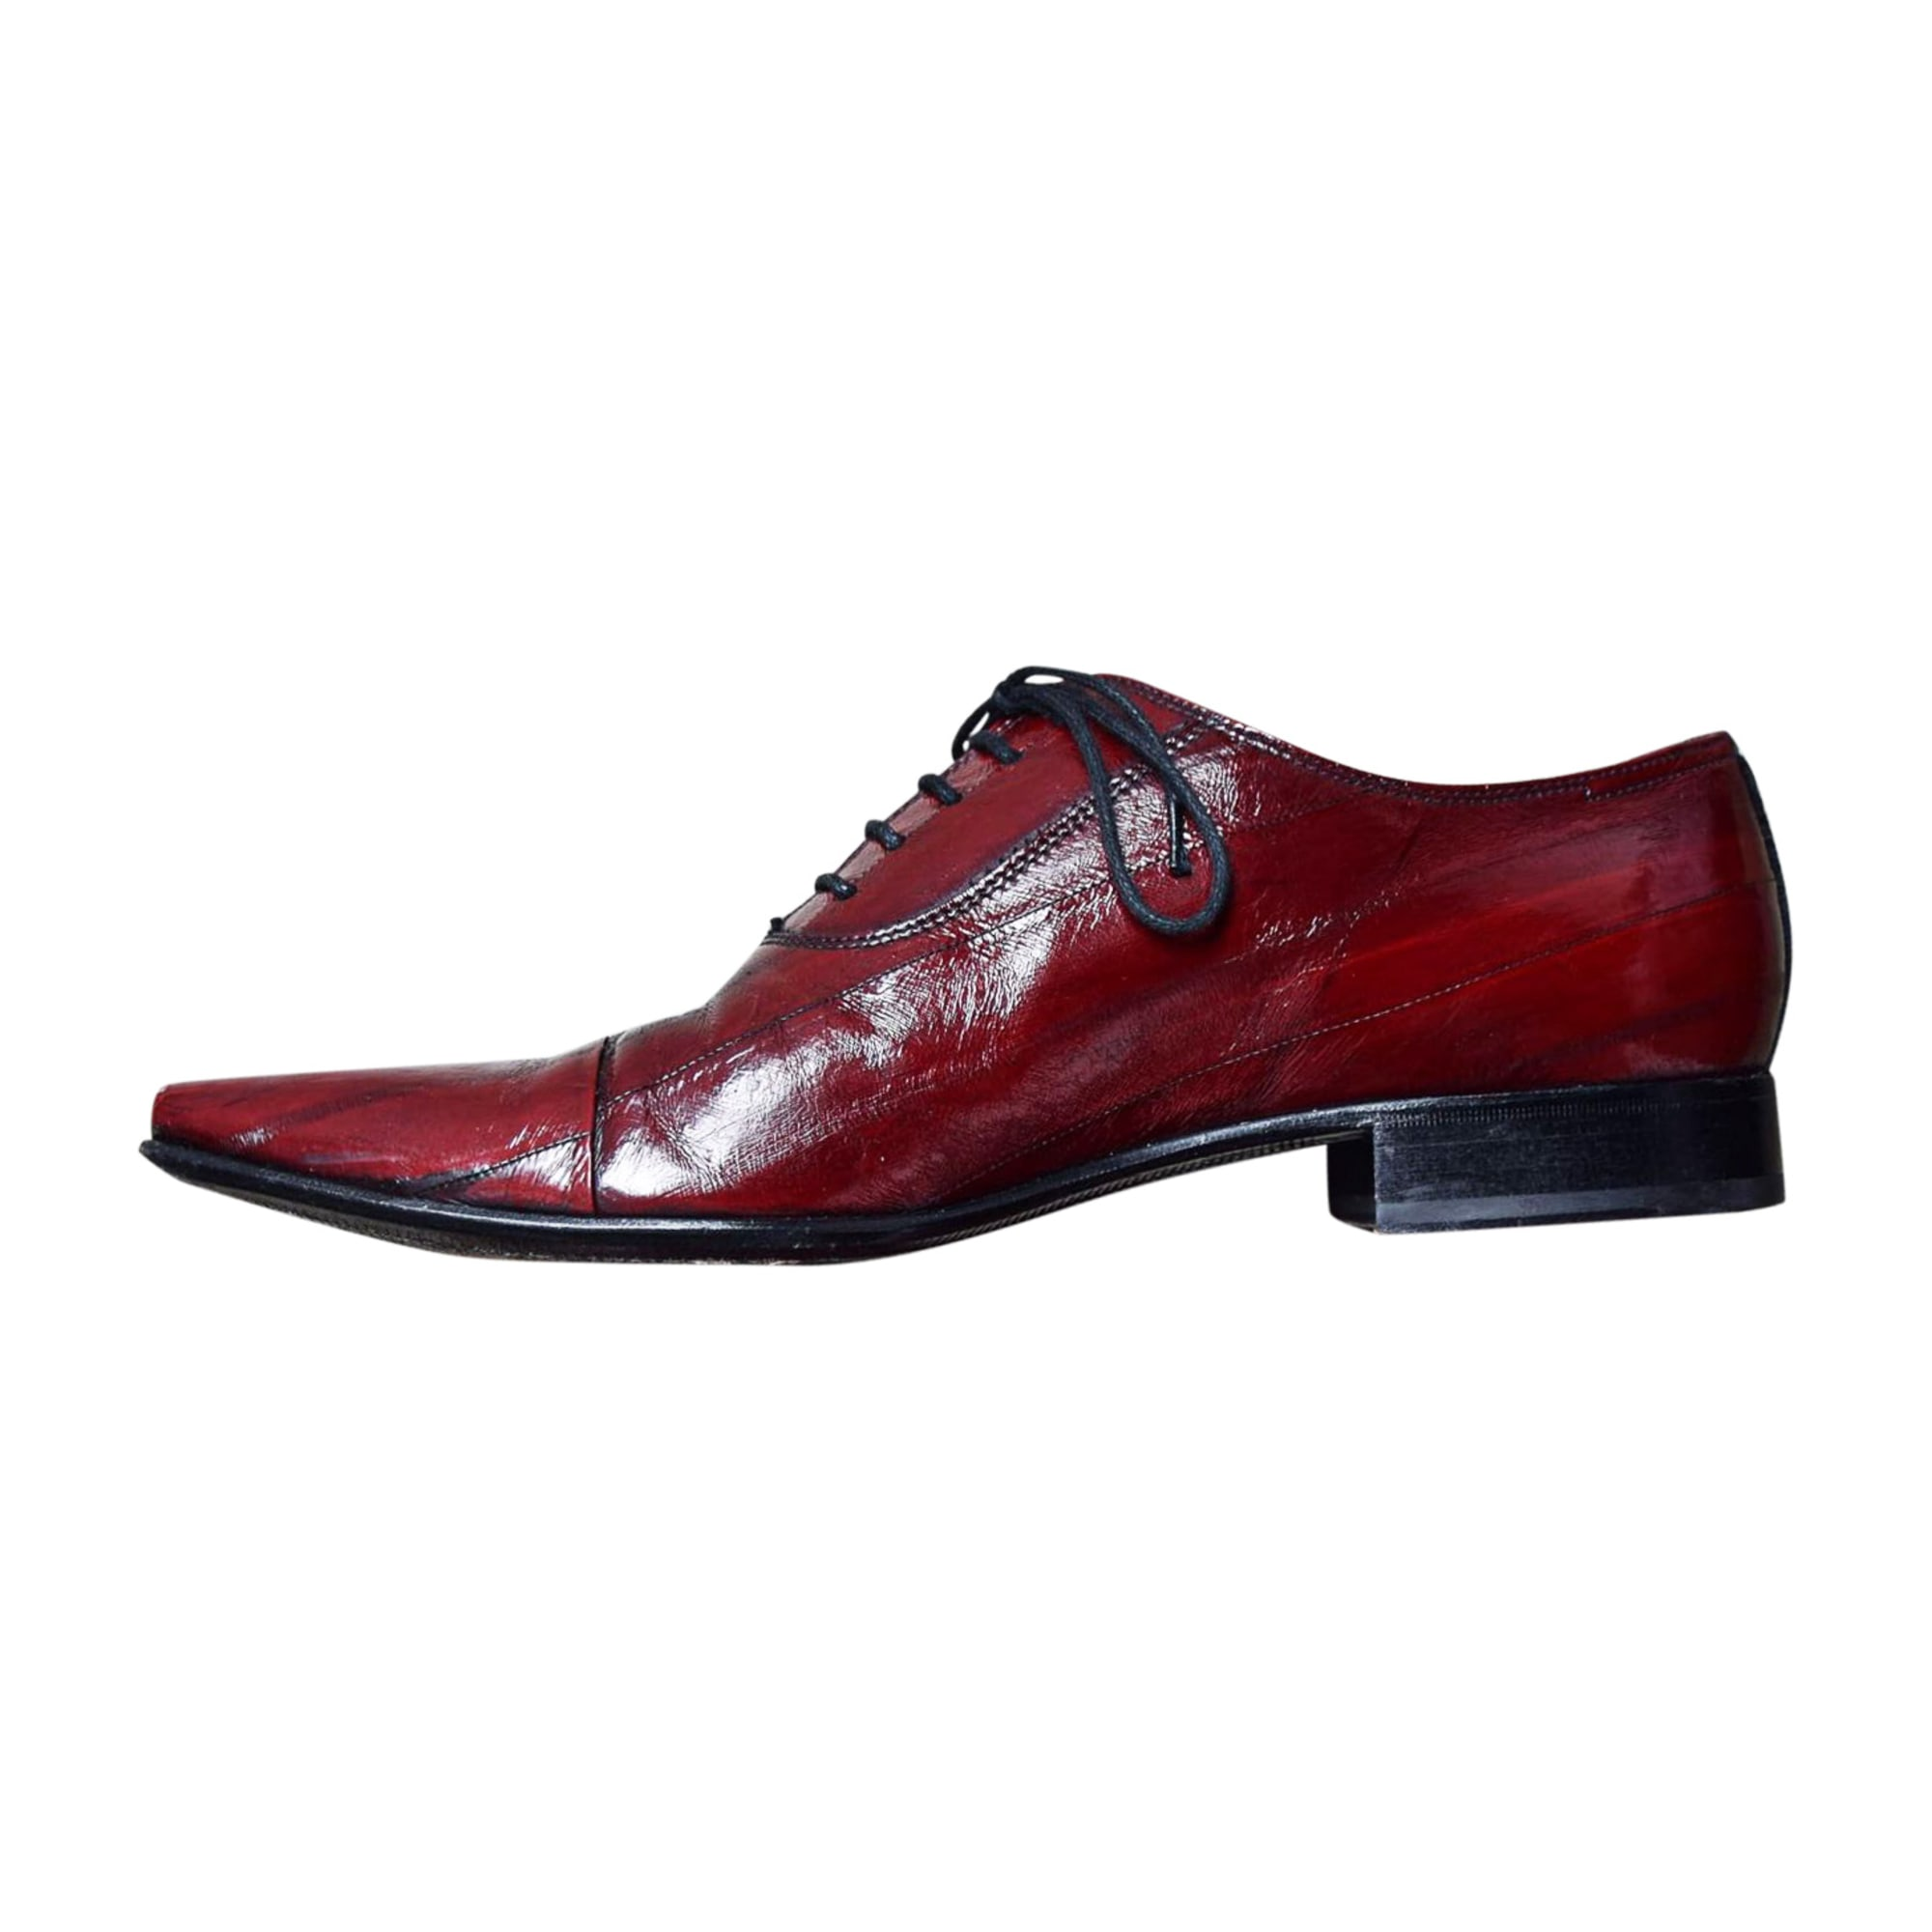 Lace Up Shoes DOLCE & GABBANA Red, burgundy